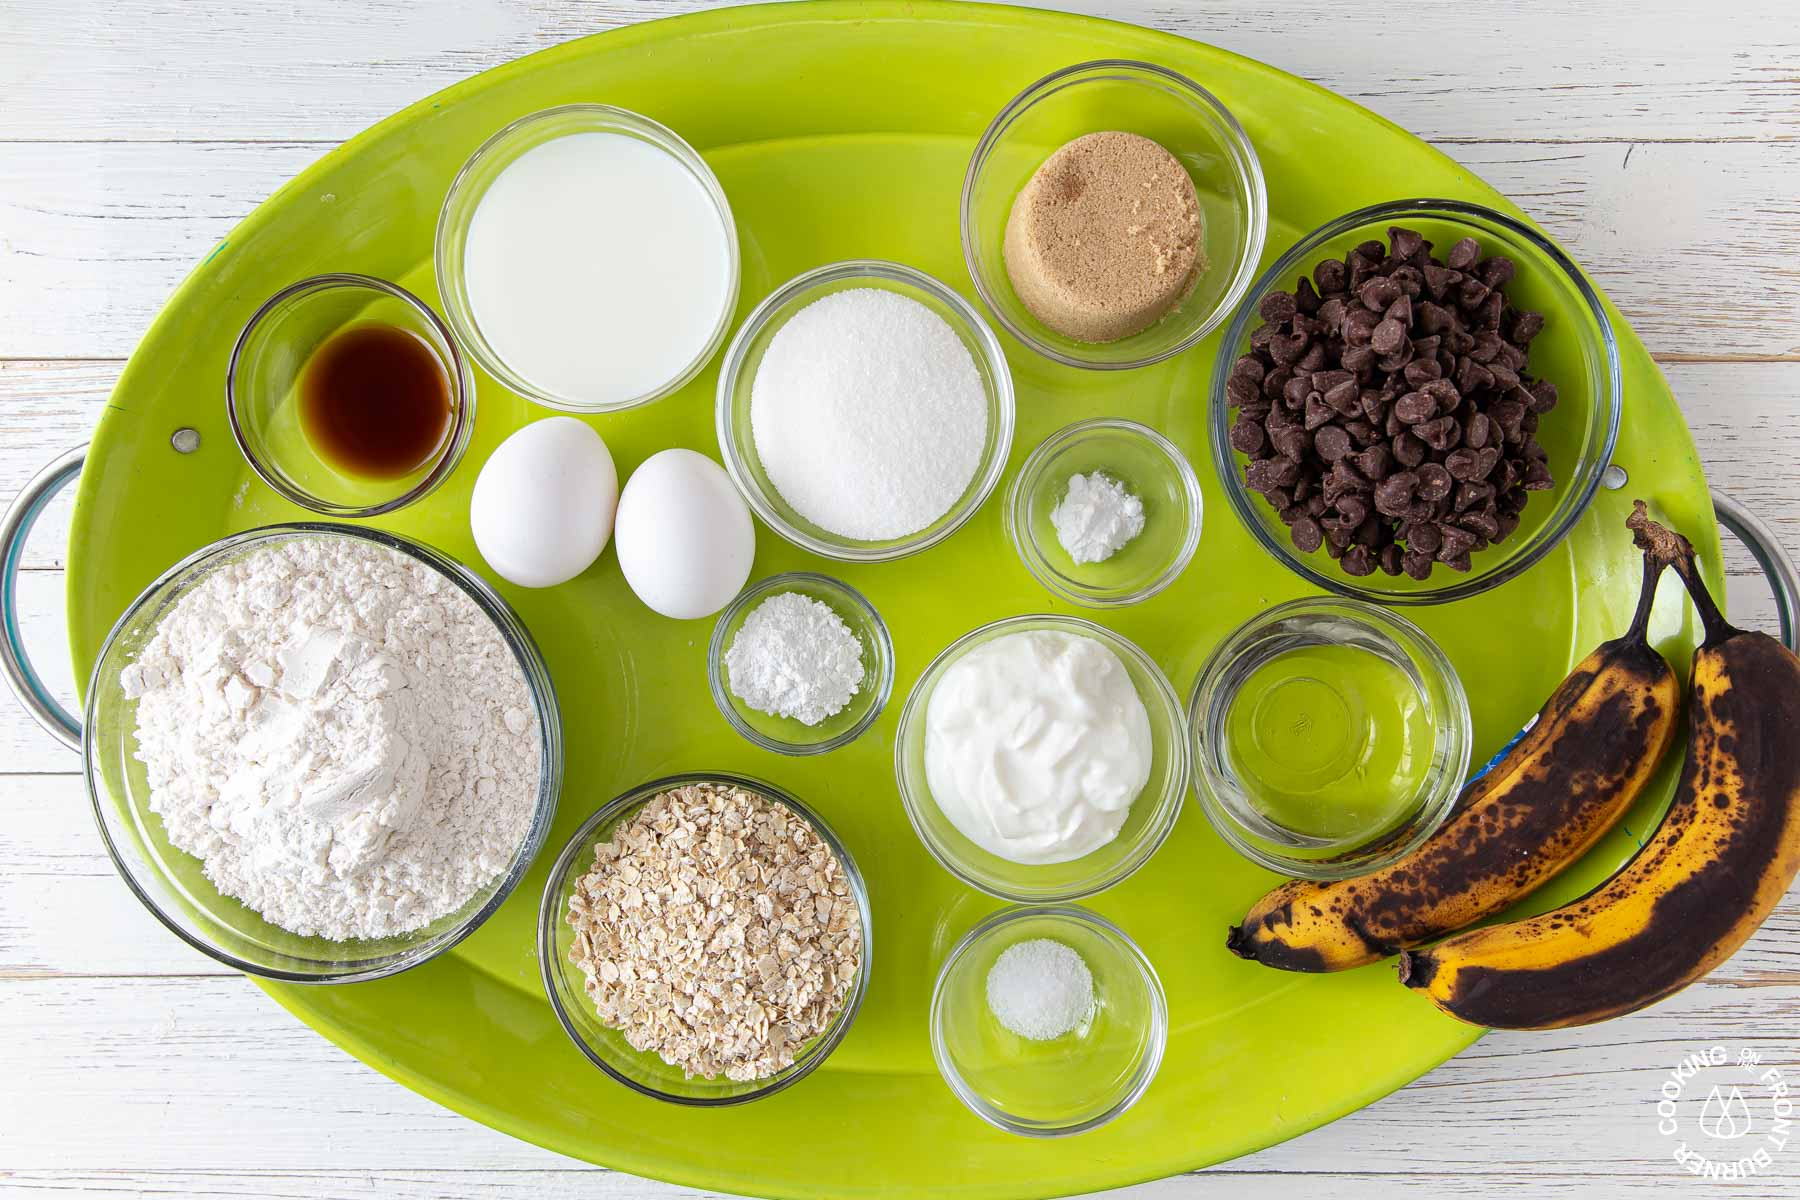 a tray with ingredients needed for banana bread